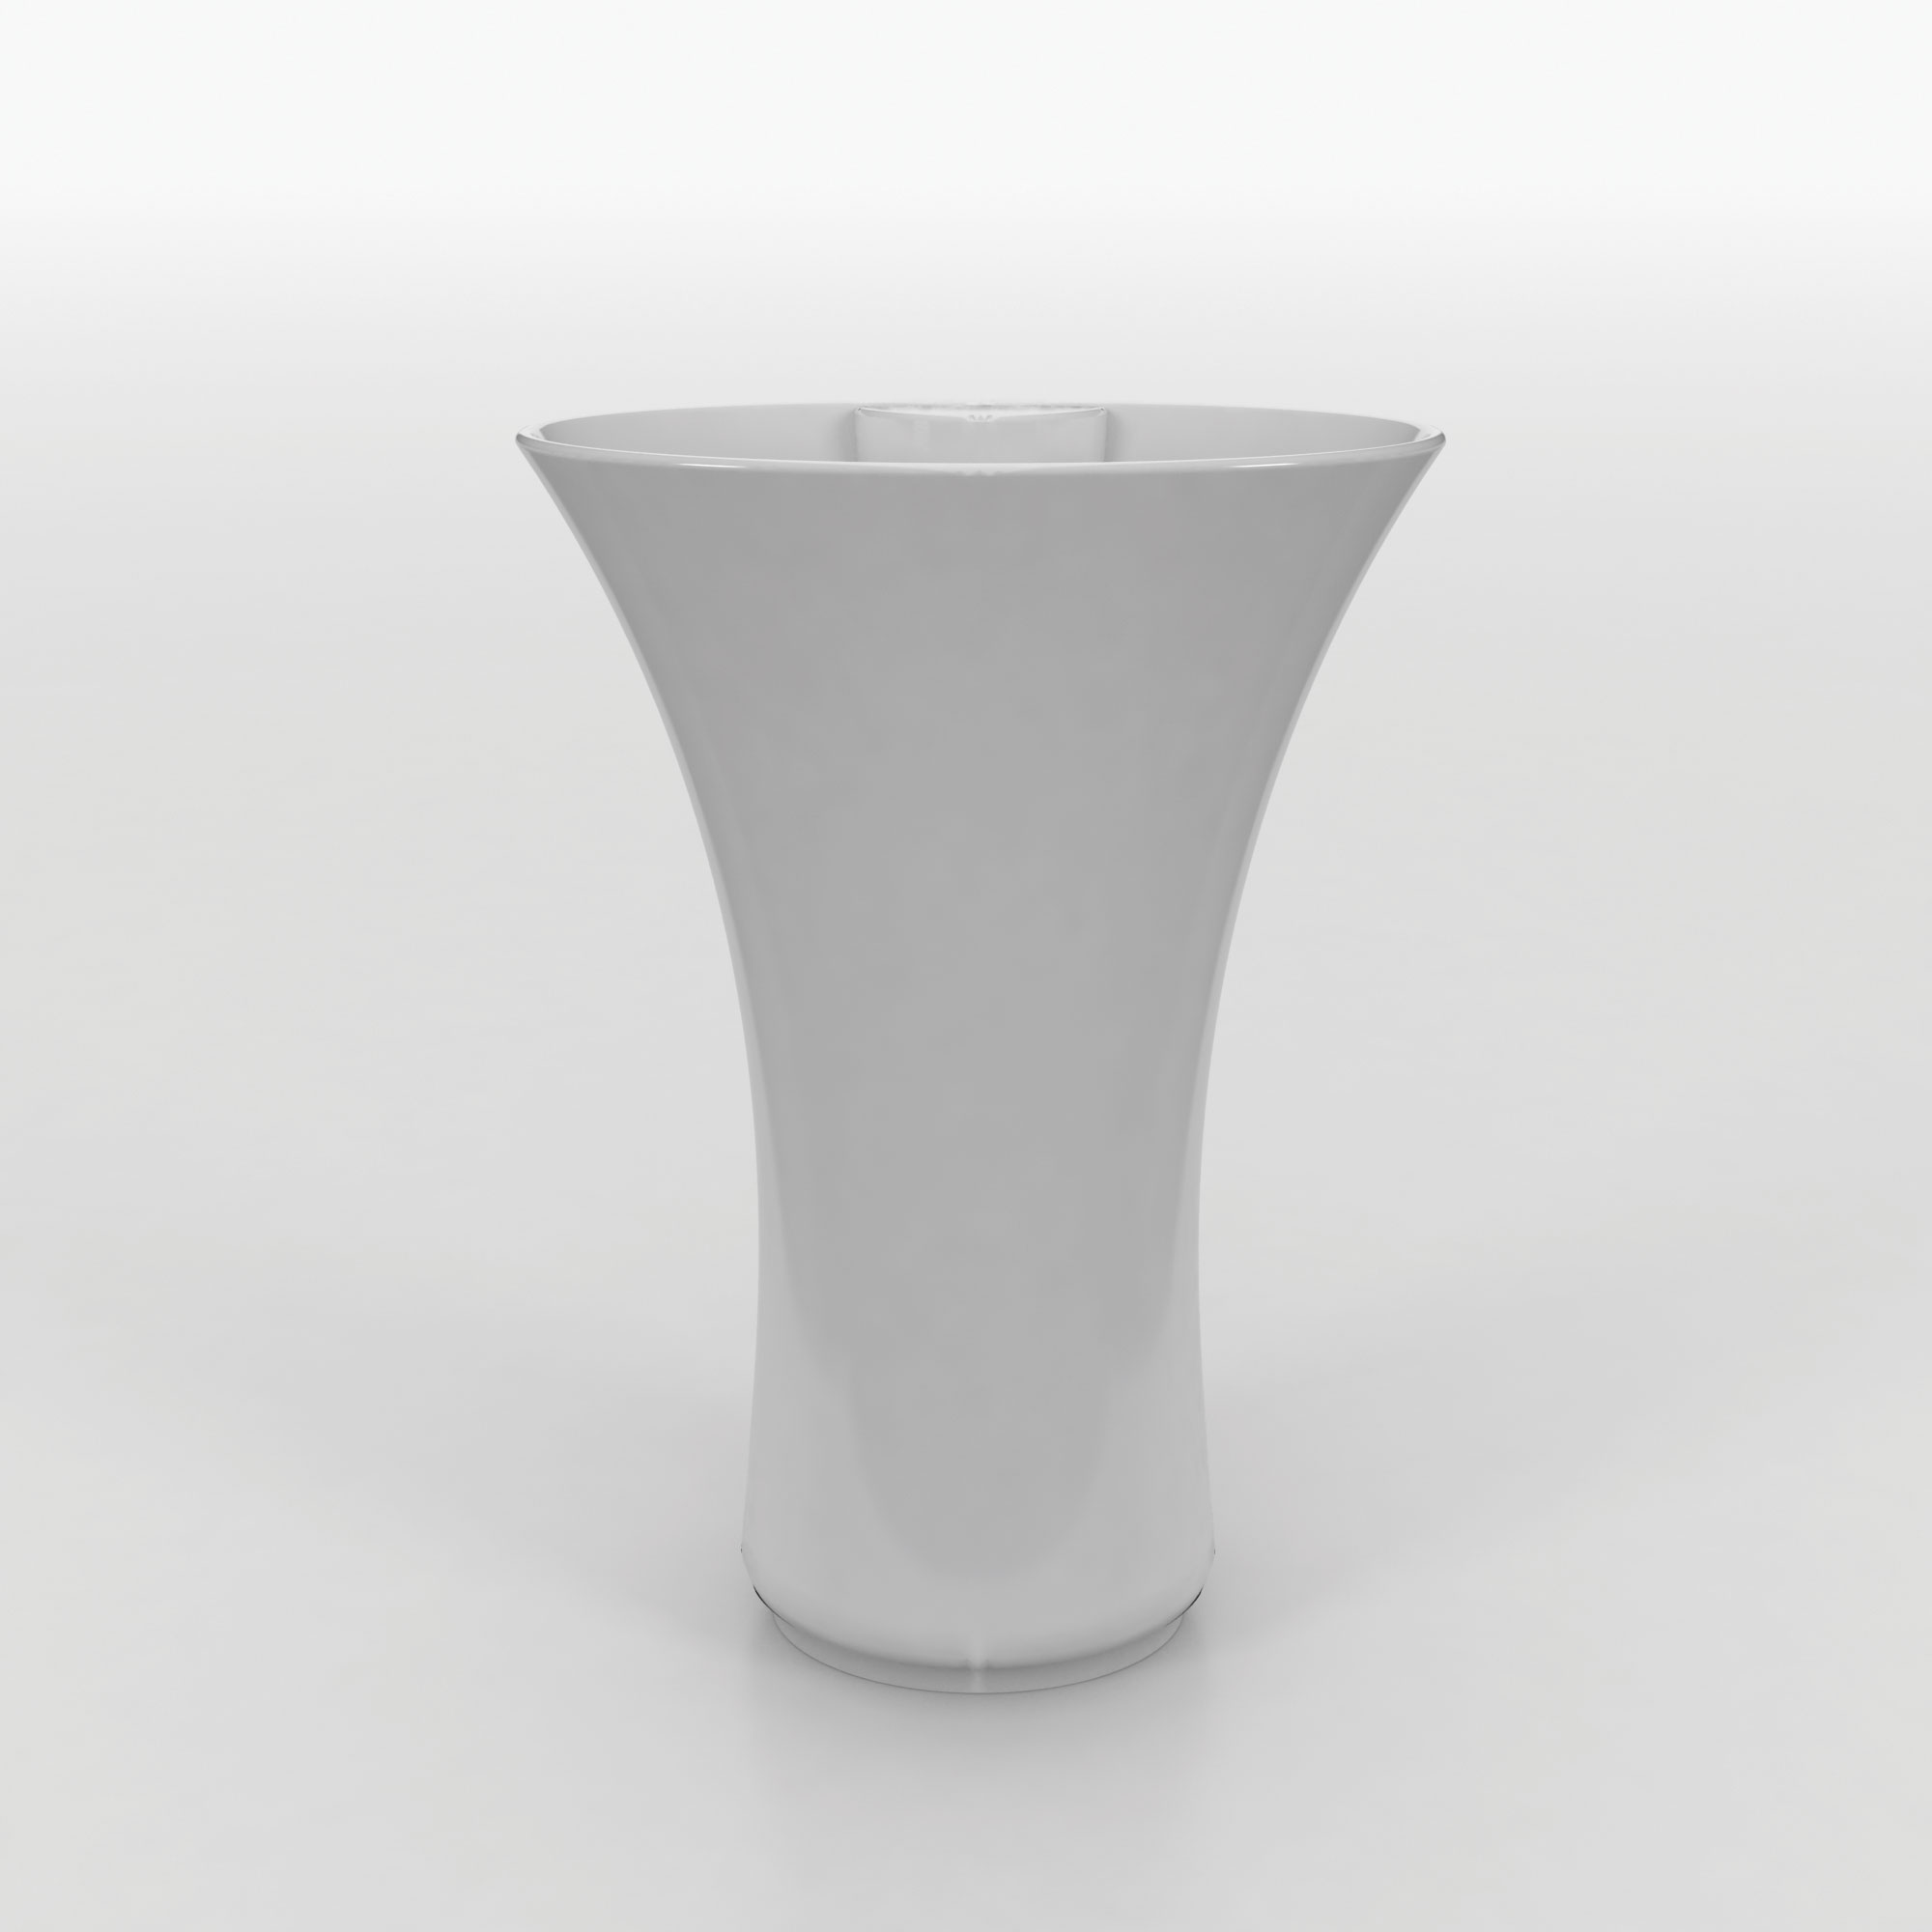 click on Freestanding Basin with Integrated Pedestal image to enlarge